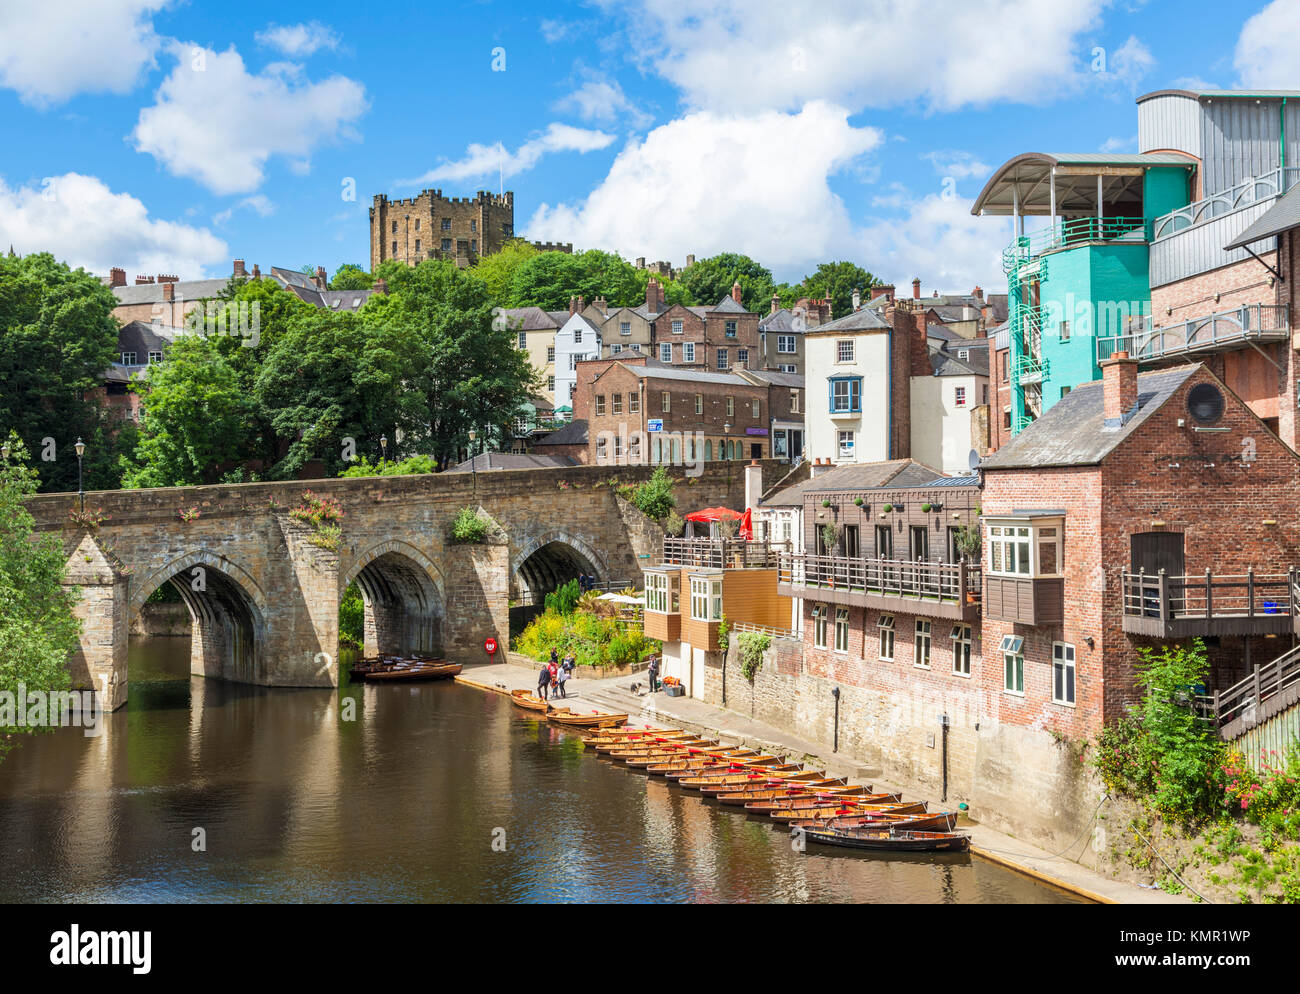 england durham england elvet Bridge arch medieval bridge over river wear with rowing boats for hire Durham city - Stock Image